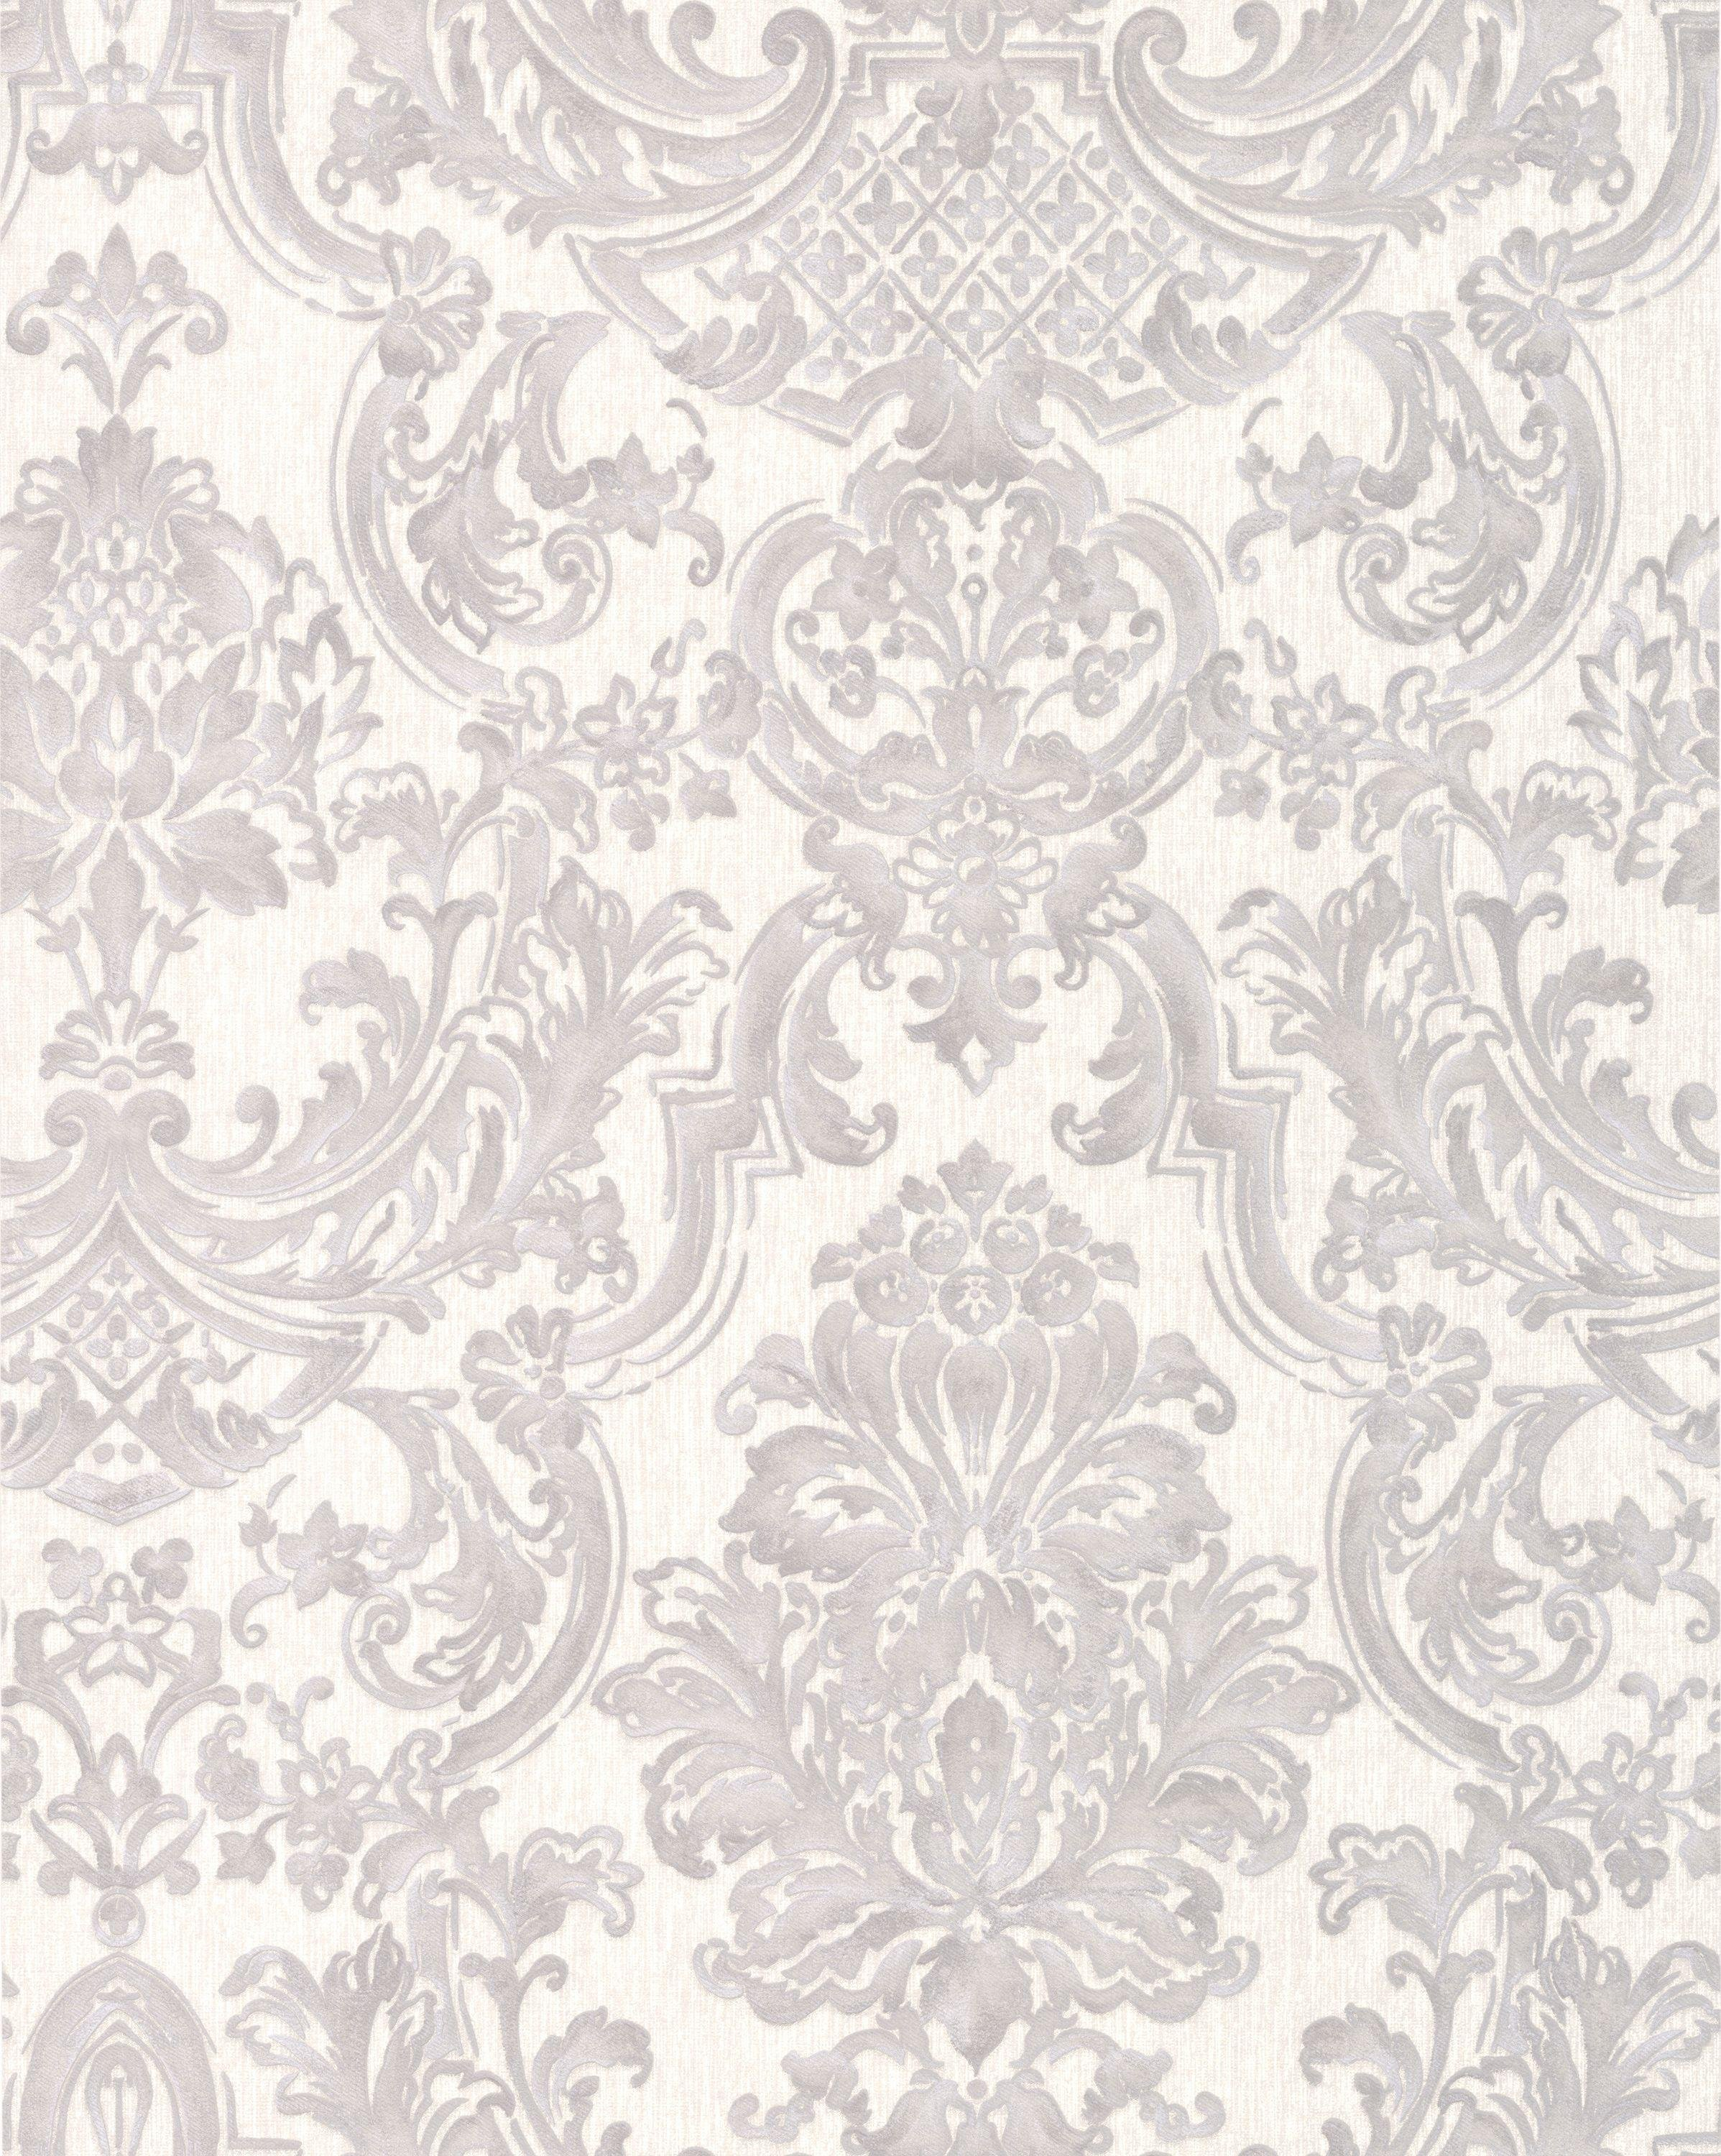 graham and brown wallpaper sample  montague silver.